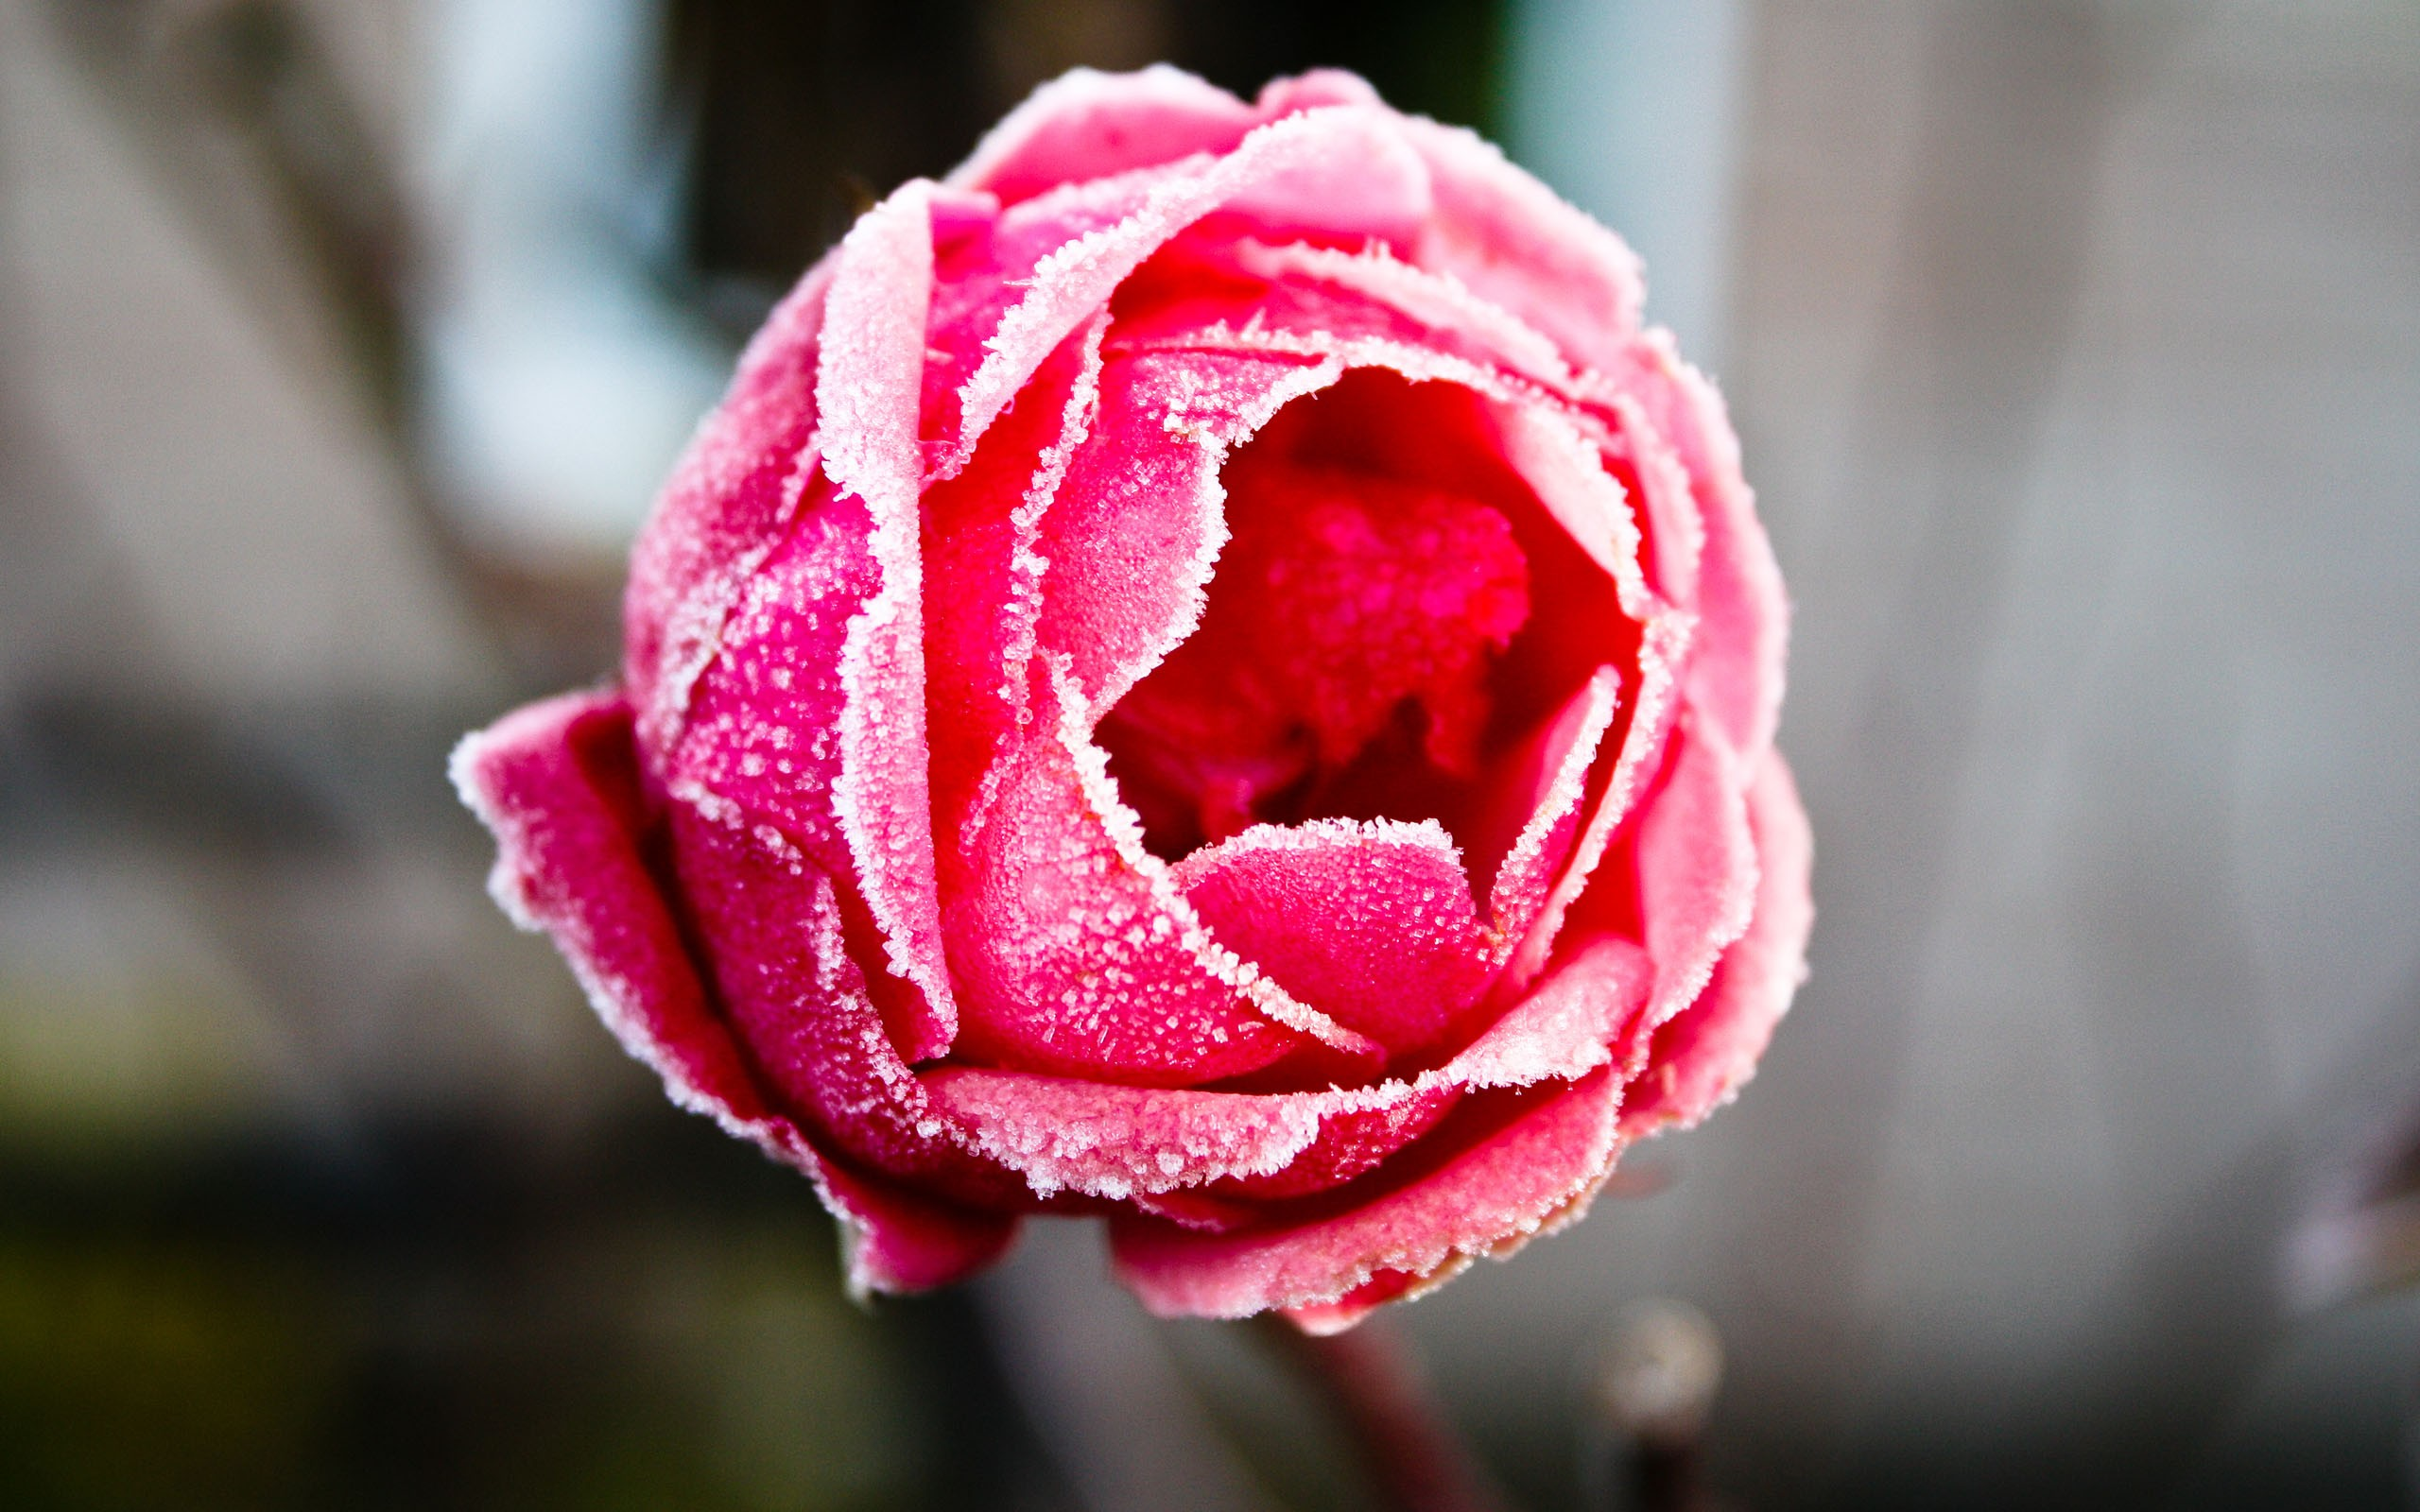 Frozen Rose 628.74 Kb